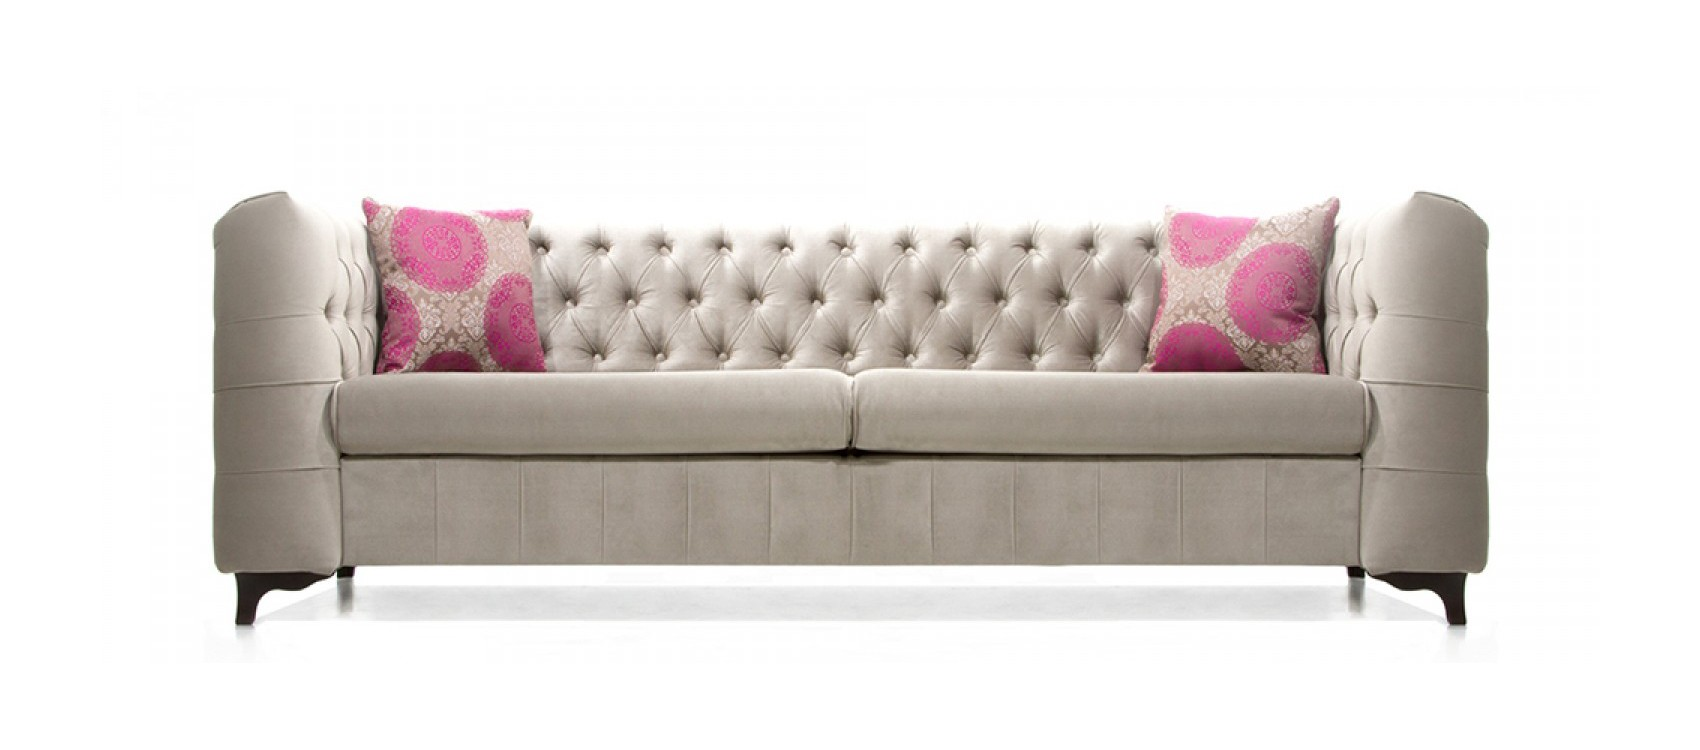 Sofa FLAIR 3 SEATER foto 5